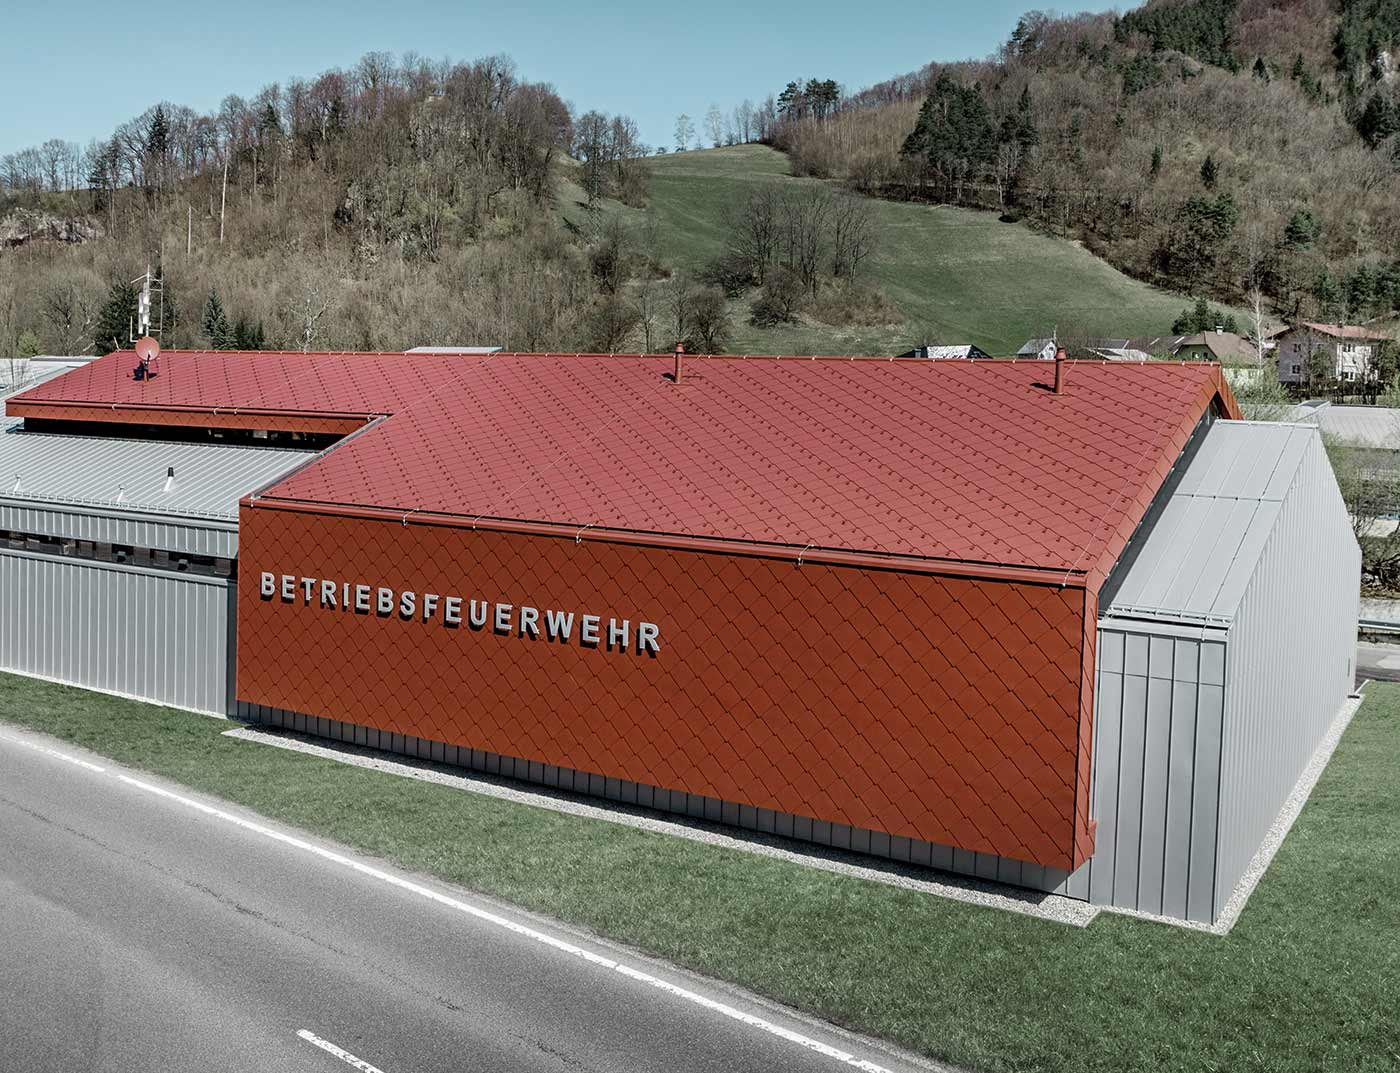 The new fire station for PREFA and Neuman Aluminium's own fire brigade was clad with the new 44 × 44 rhomboid roof and wall tiles in P.10 oxide red and Prefalz in metallic silver.